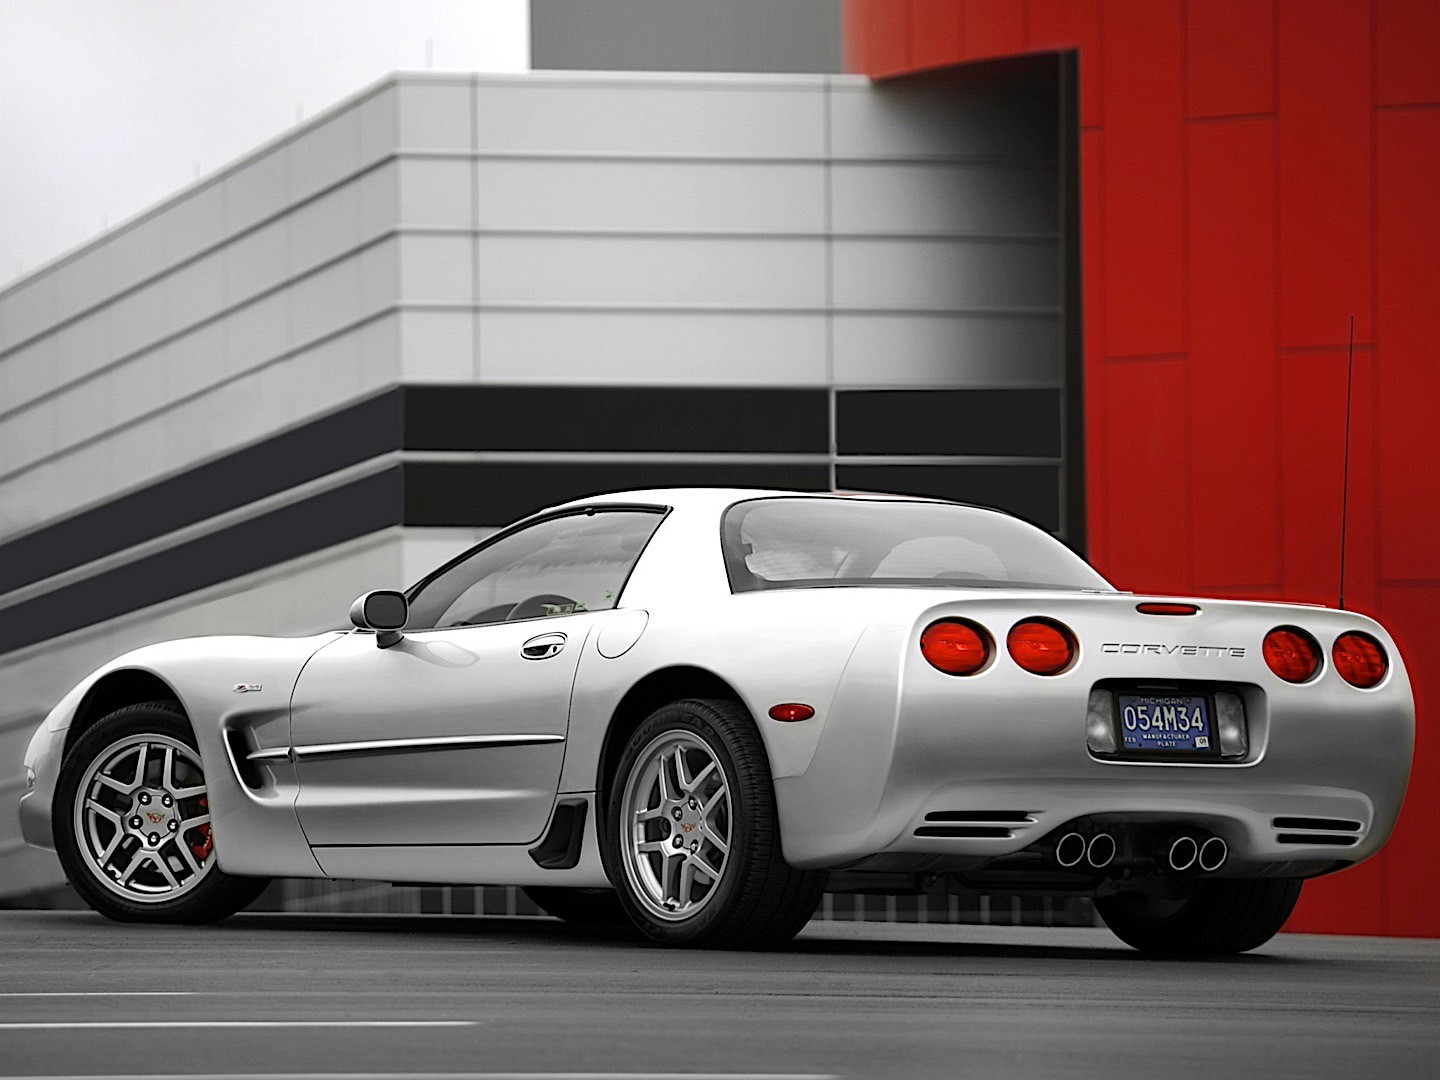 chevrolet corvette c5 z06 specs photos 2001 2002. Black Bedroom Furniture Sets. Home Design Ideas